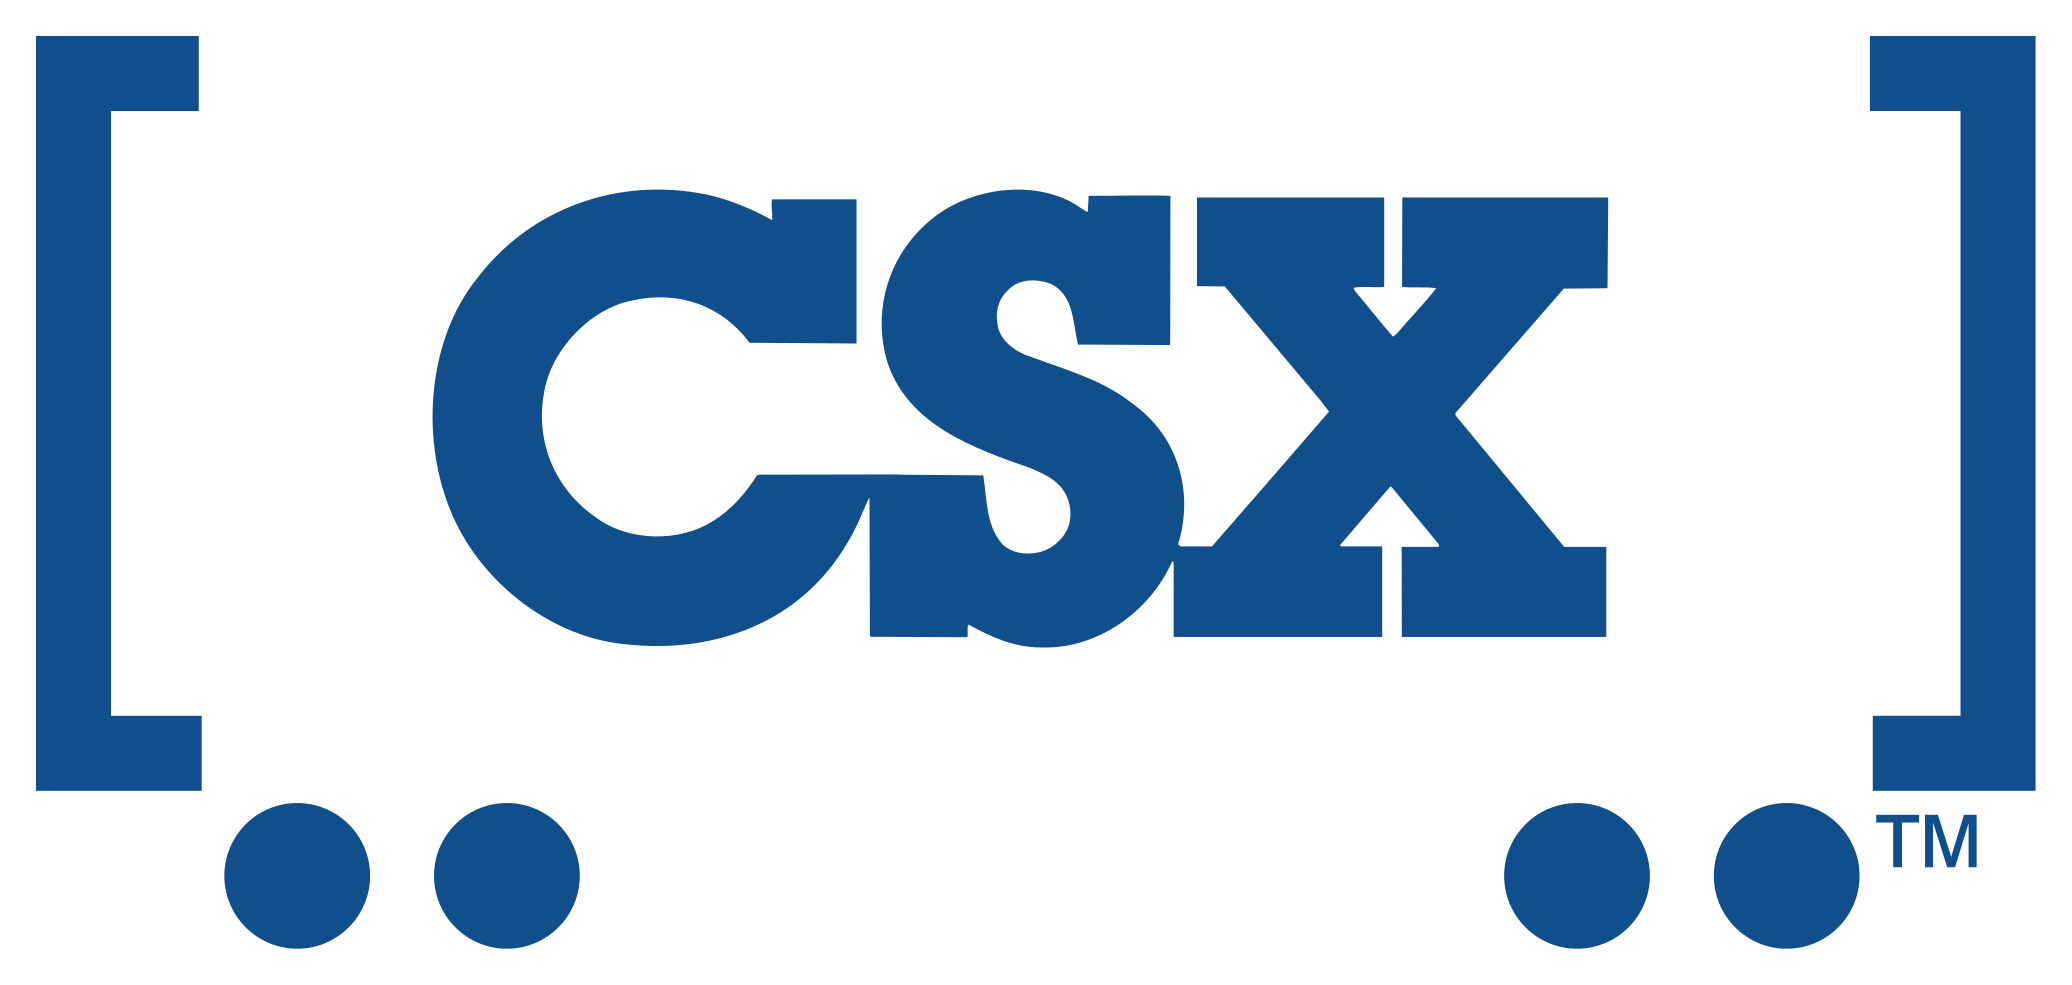 Download Csx Logo Png Image For Free Transportation Logo Csx Transportation Logos